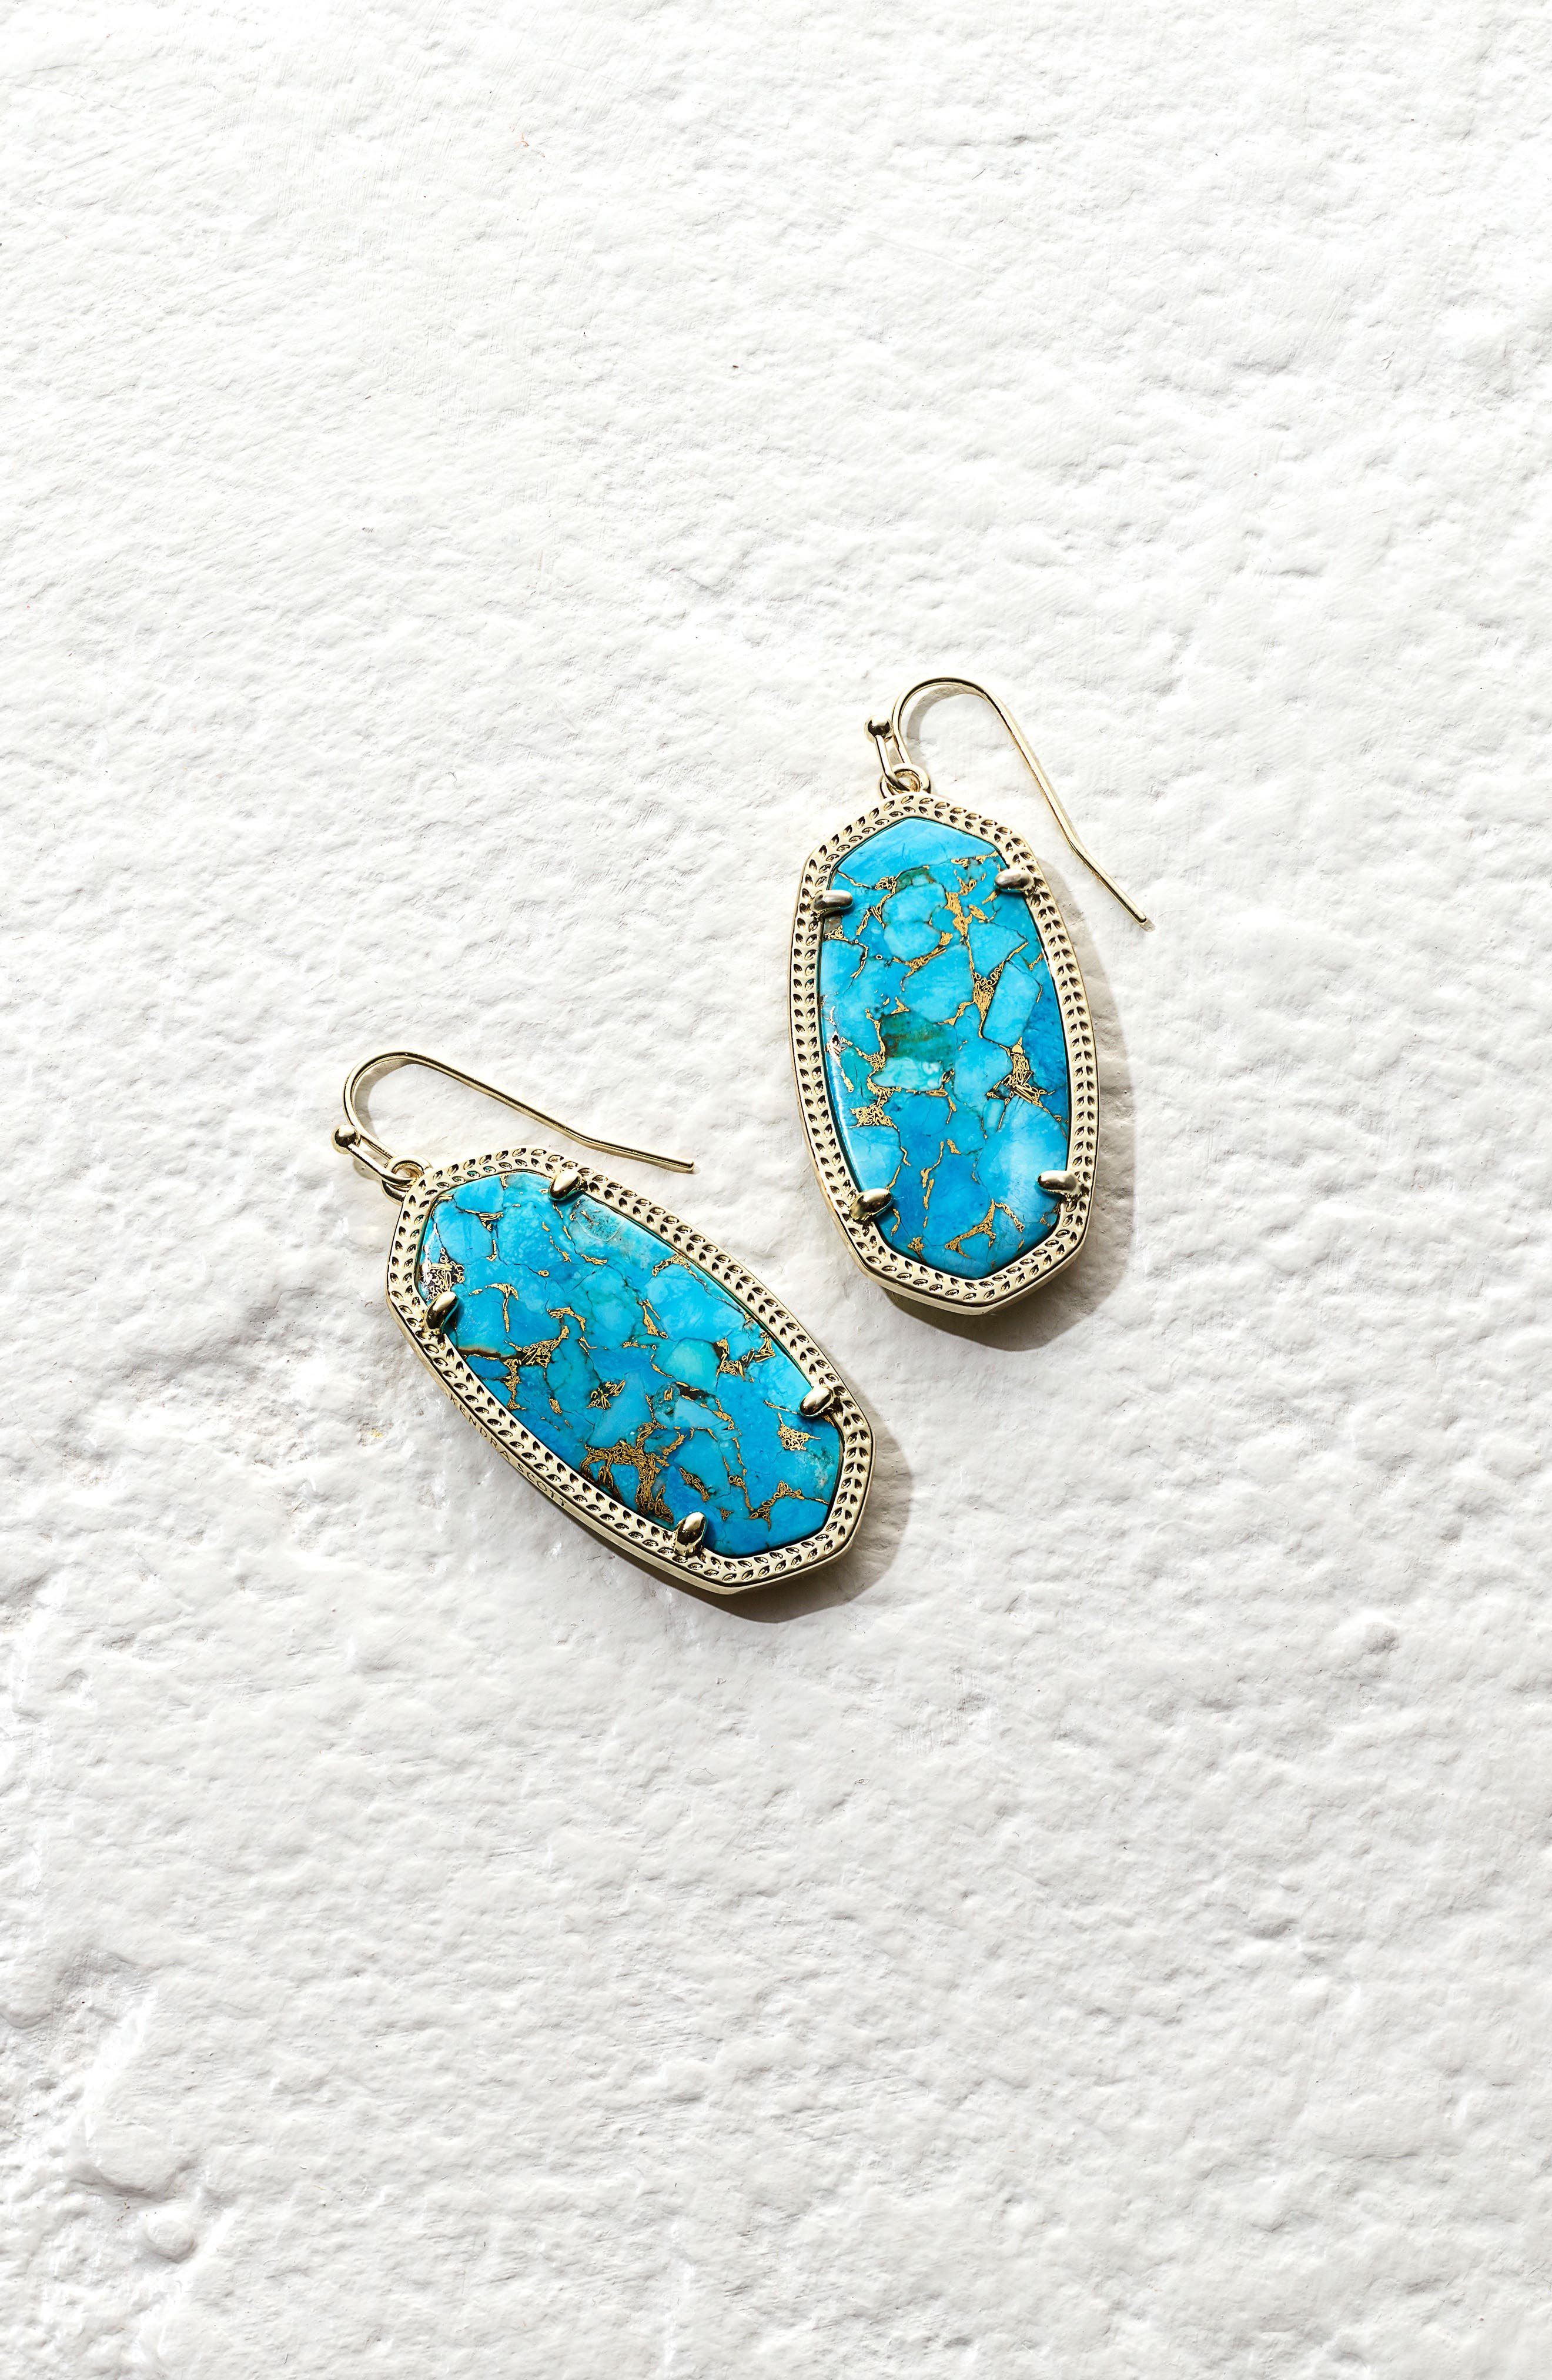 Danielle - Large Oval Statement Earrings,                             Alternate thumbnail 391, color,